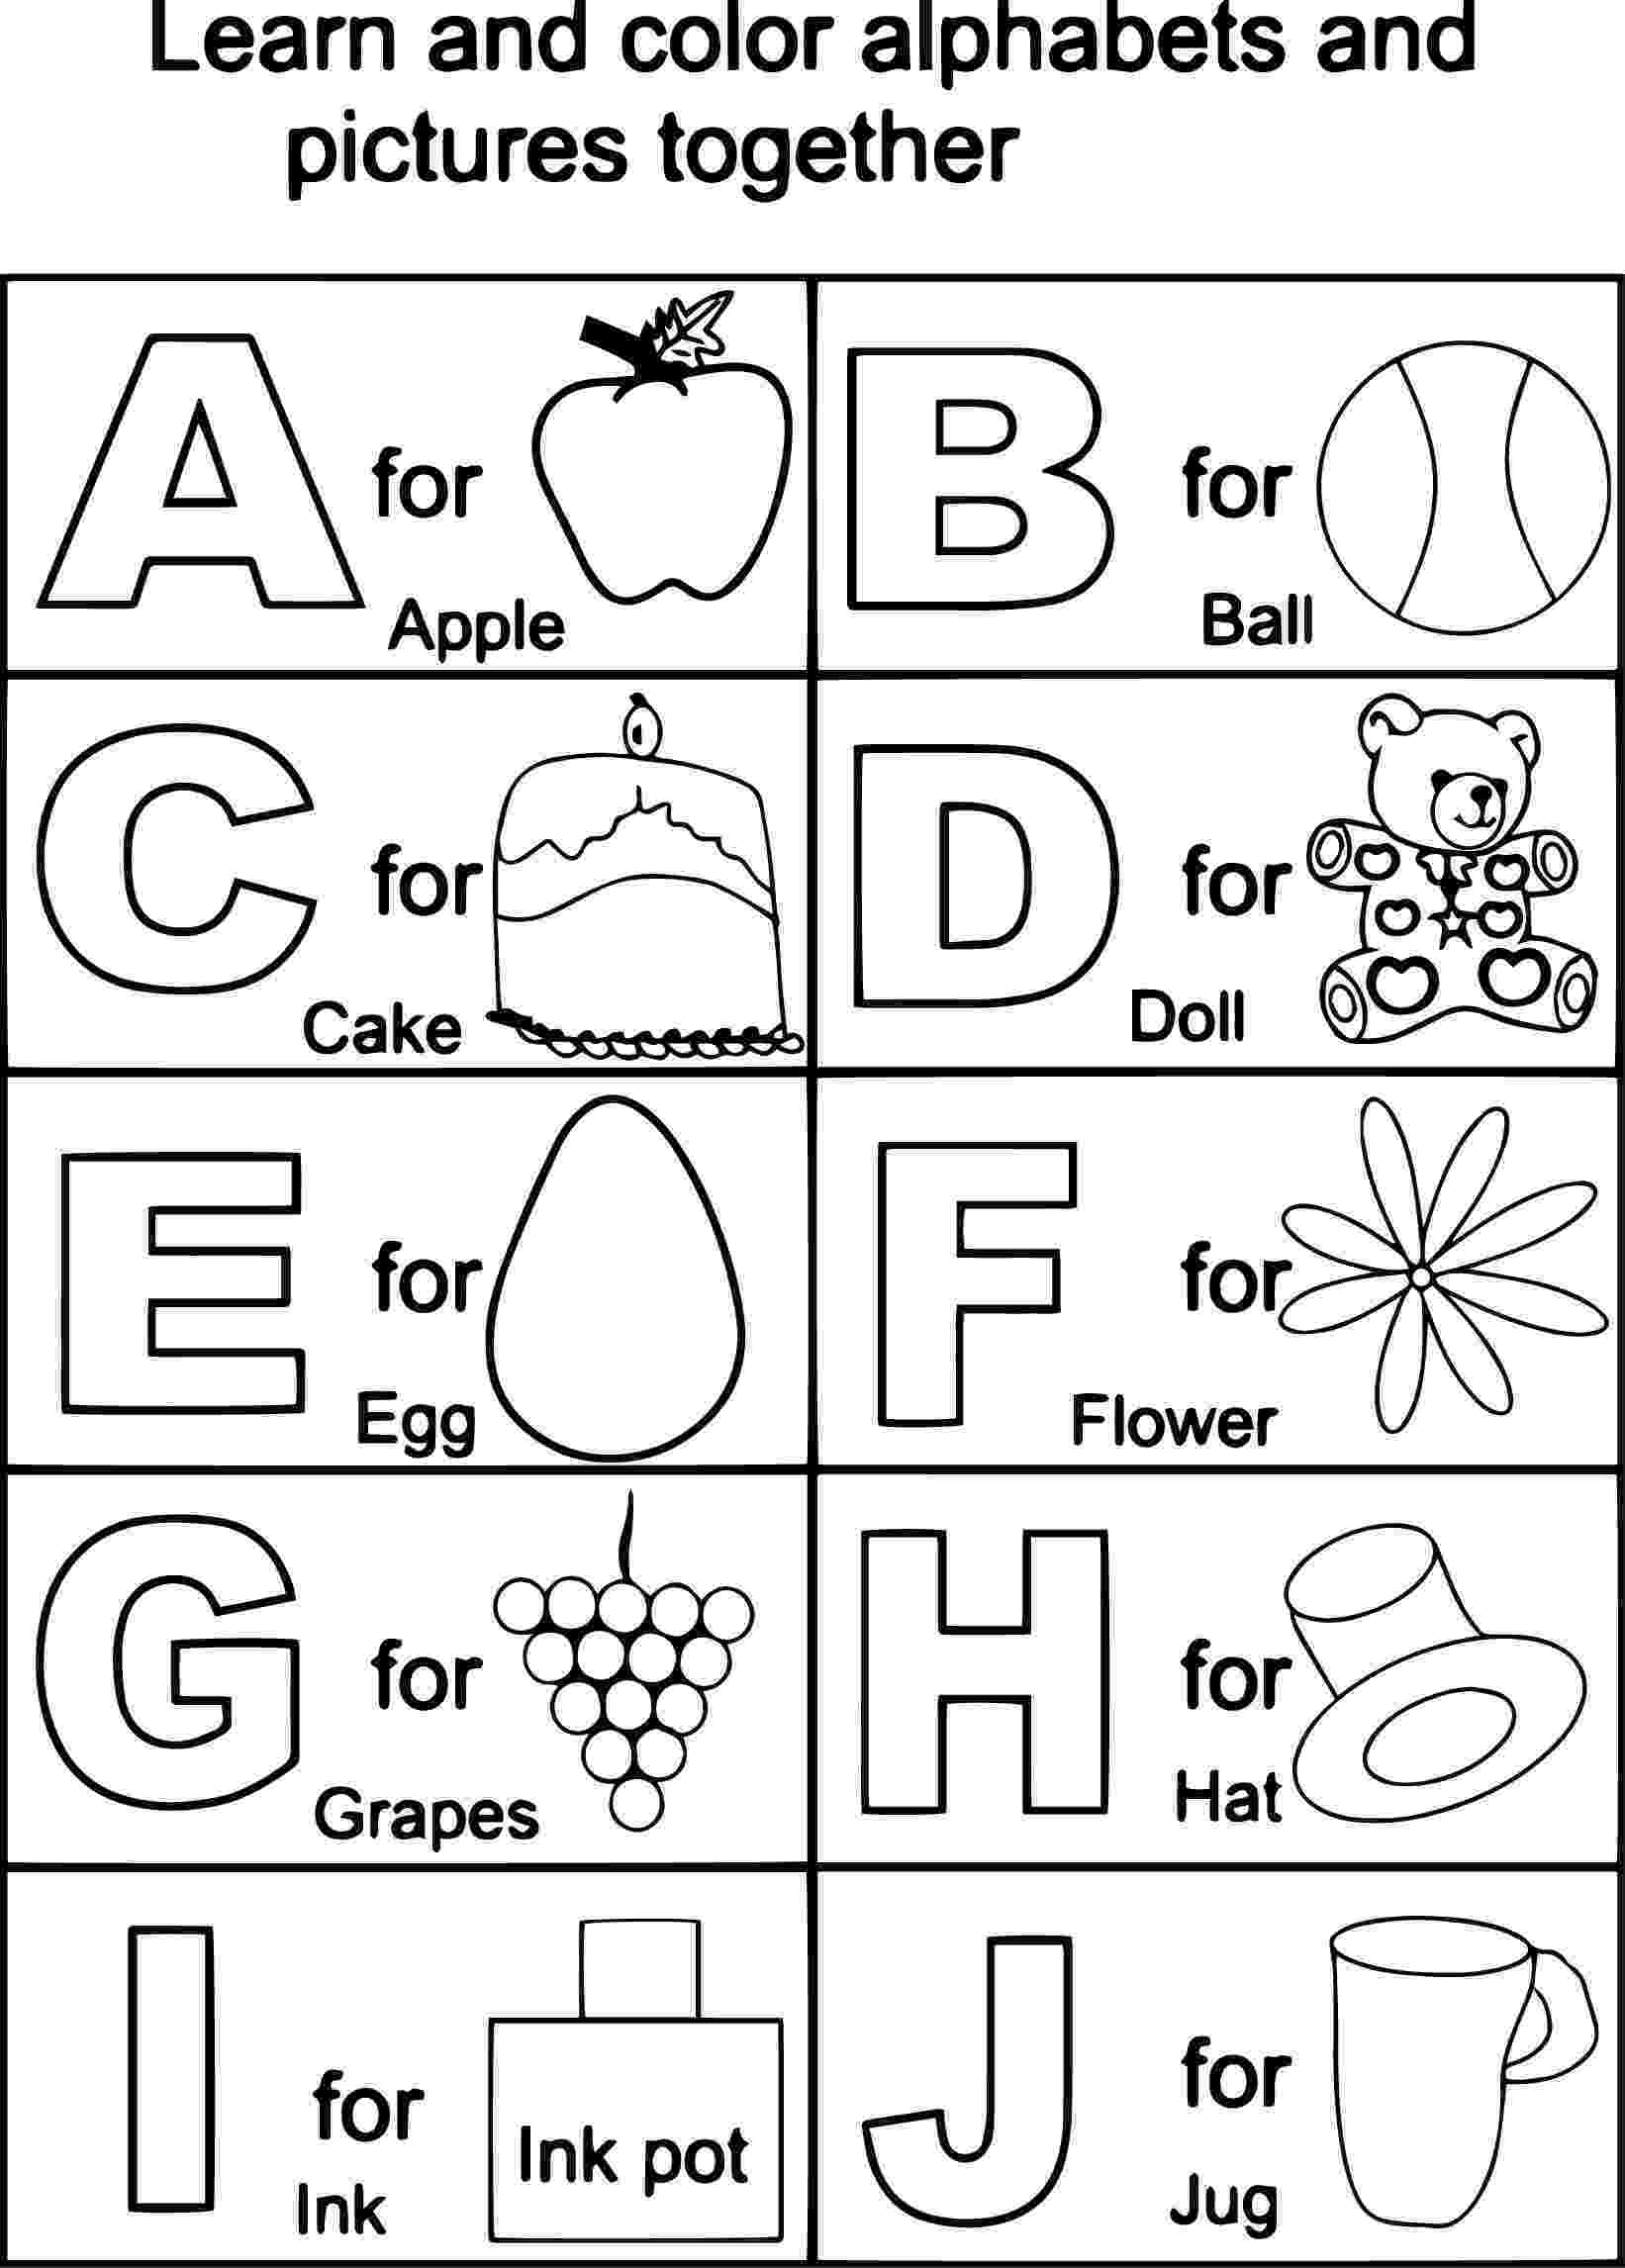 childrens colouring pages alphabet free printable alphabet coloring pages for kids best colouring childrens pages alphabet